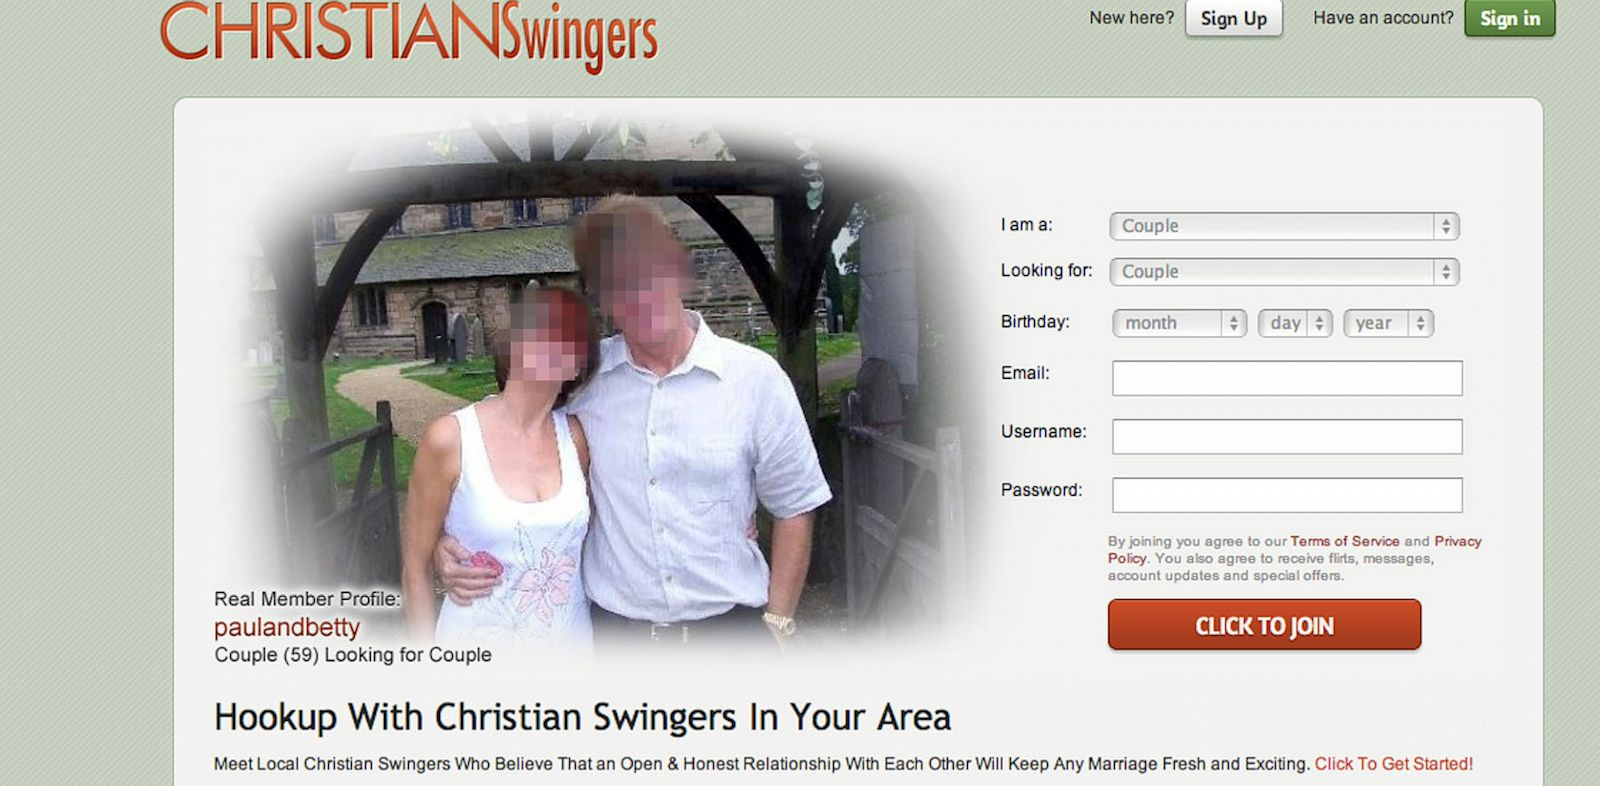 PHOTO: Christianswingers.com is offering Christians a chance to become swingers